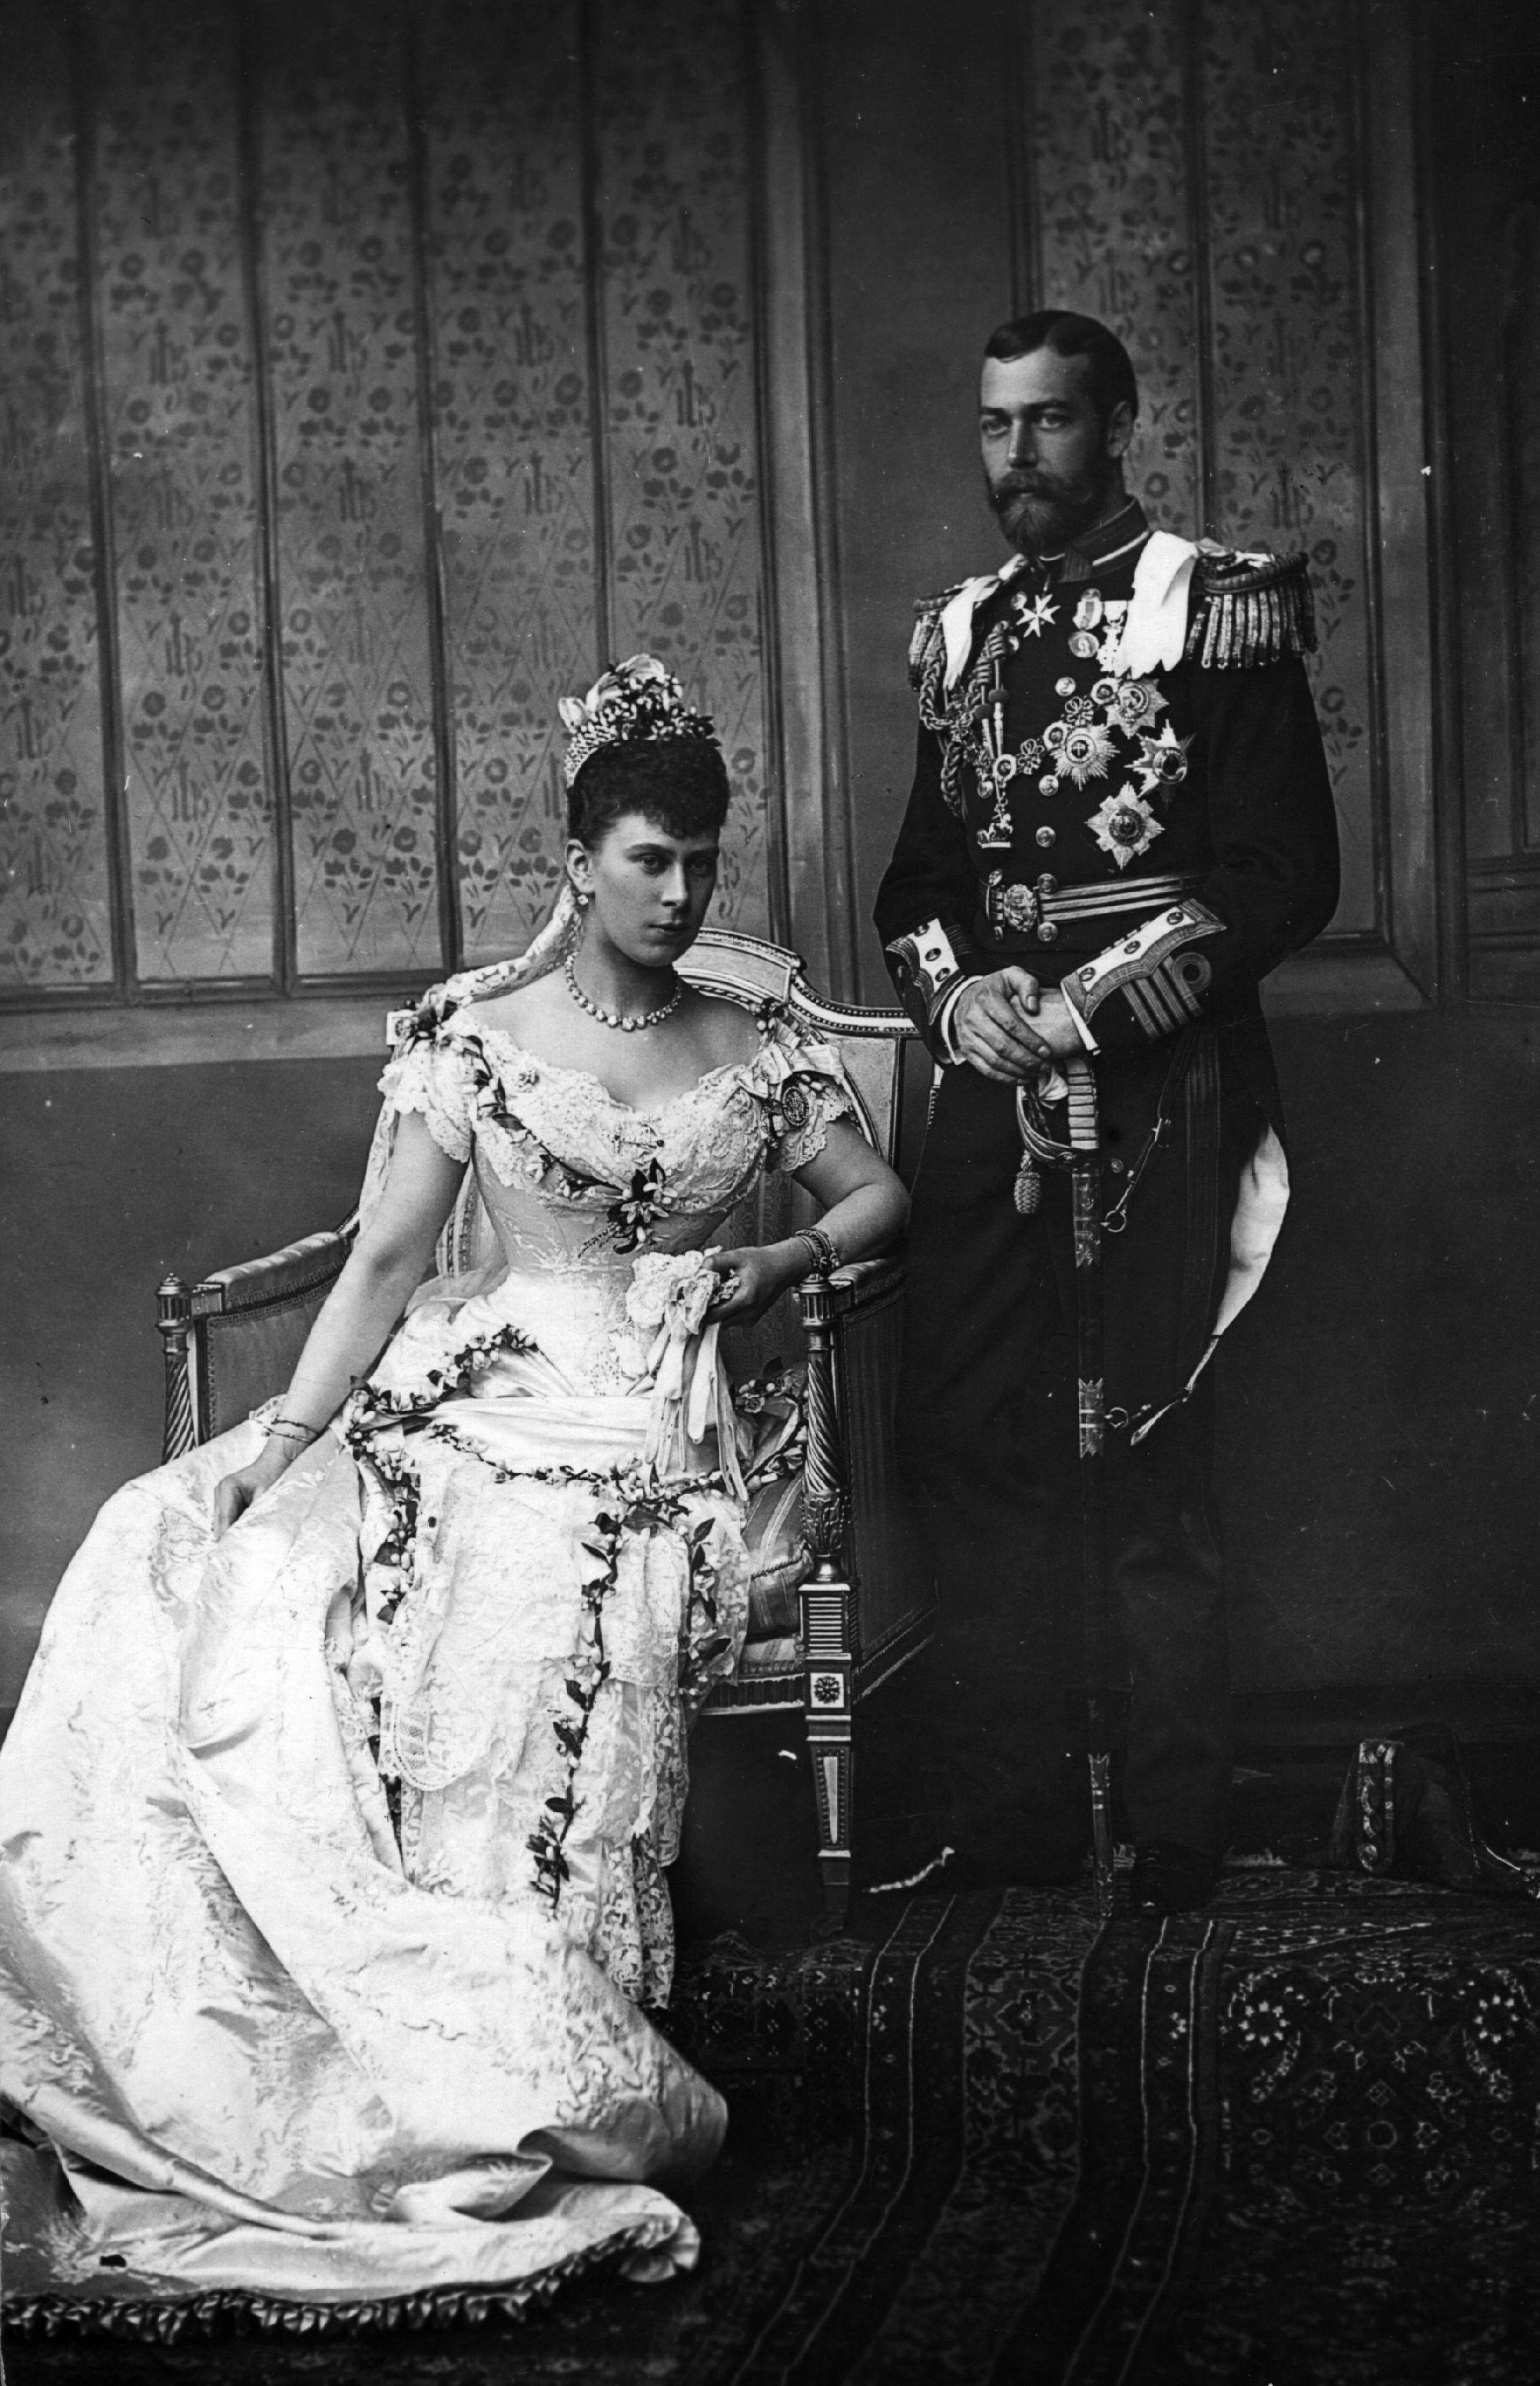 King George V on his wedding day with his bride Princess Mary of Teck on July 6, 1893.